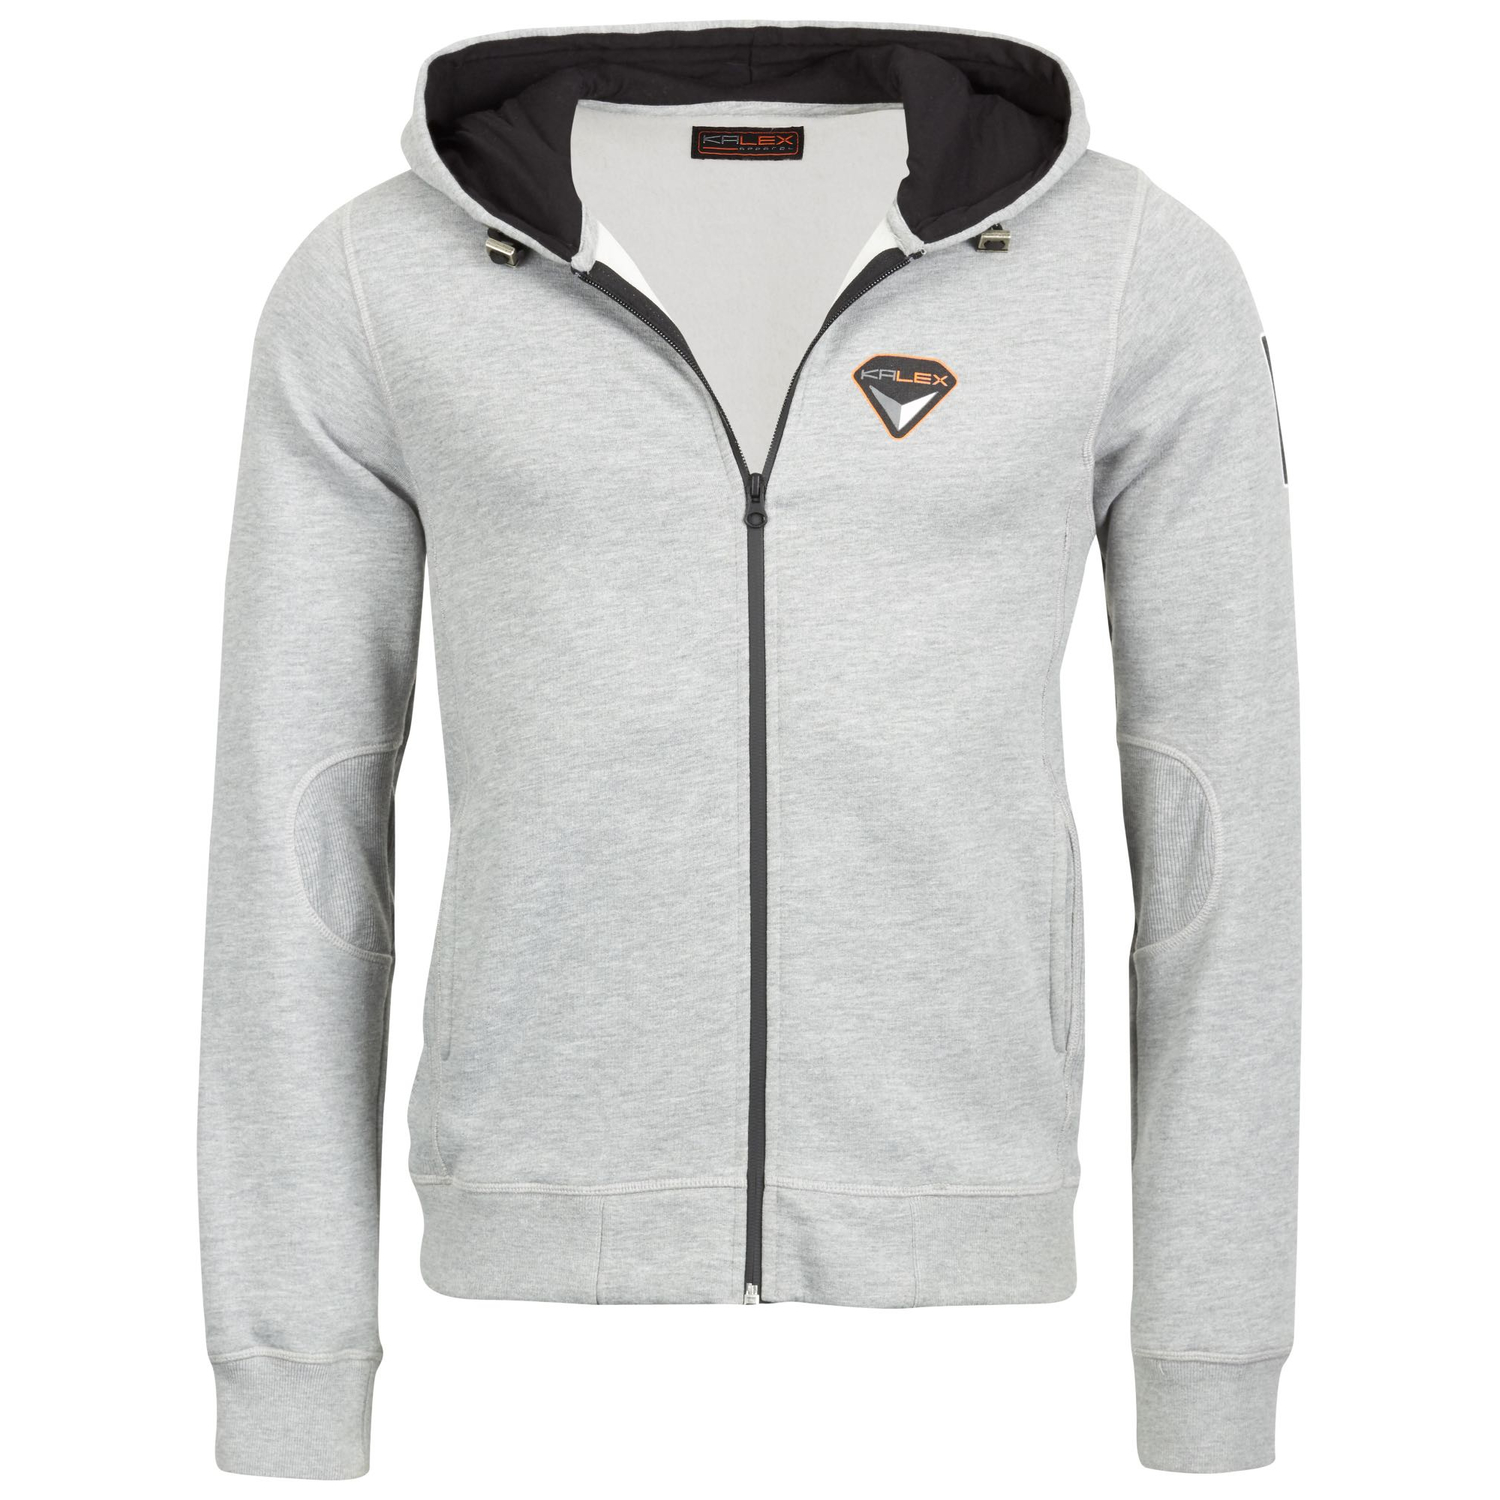 SWEAT JACKE GRAU MELANGE XL